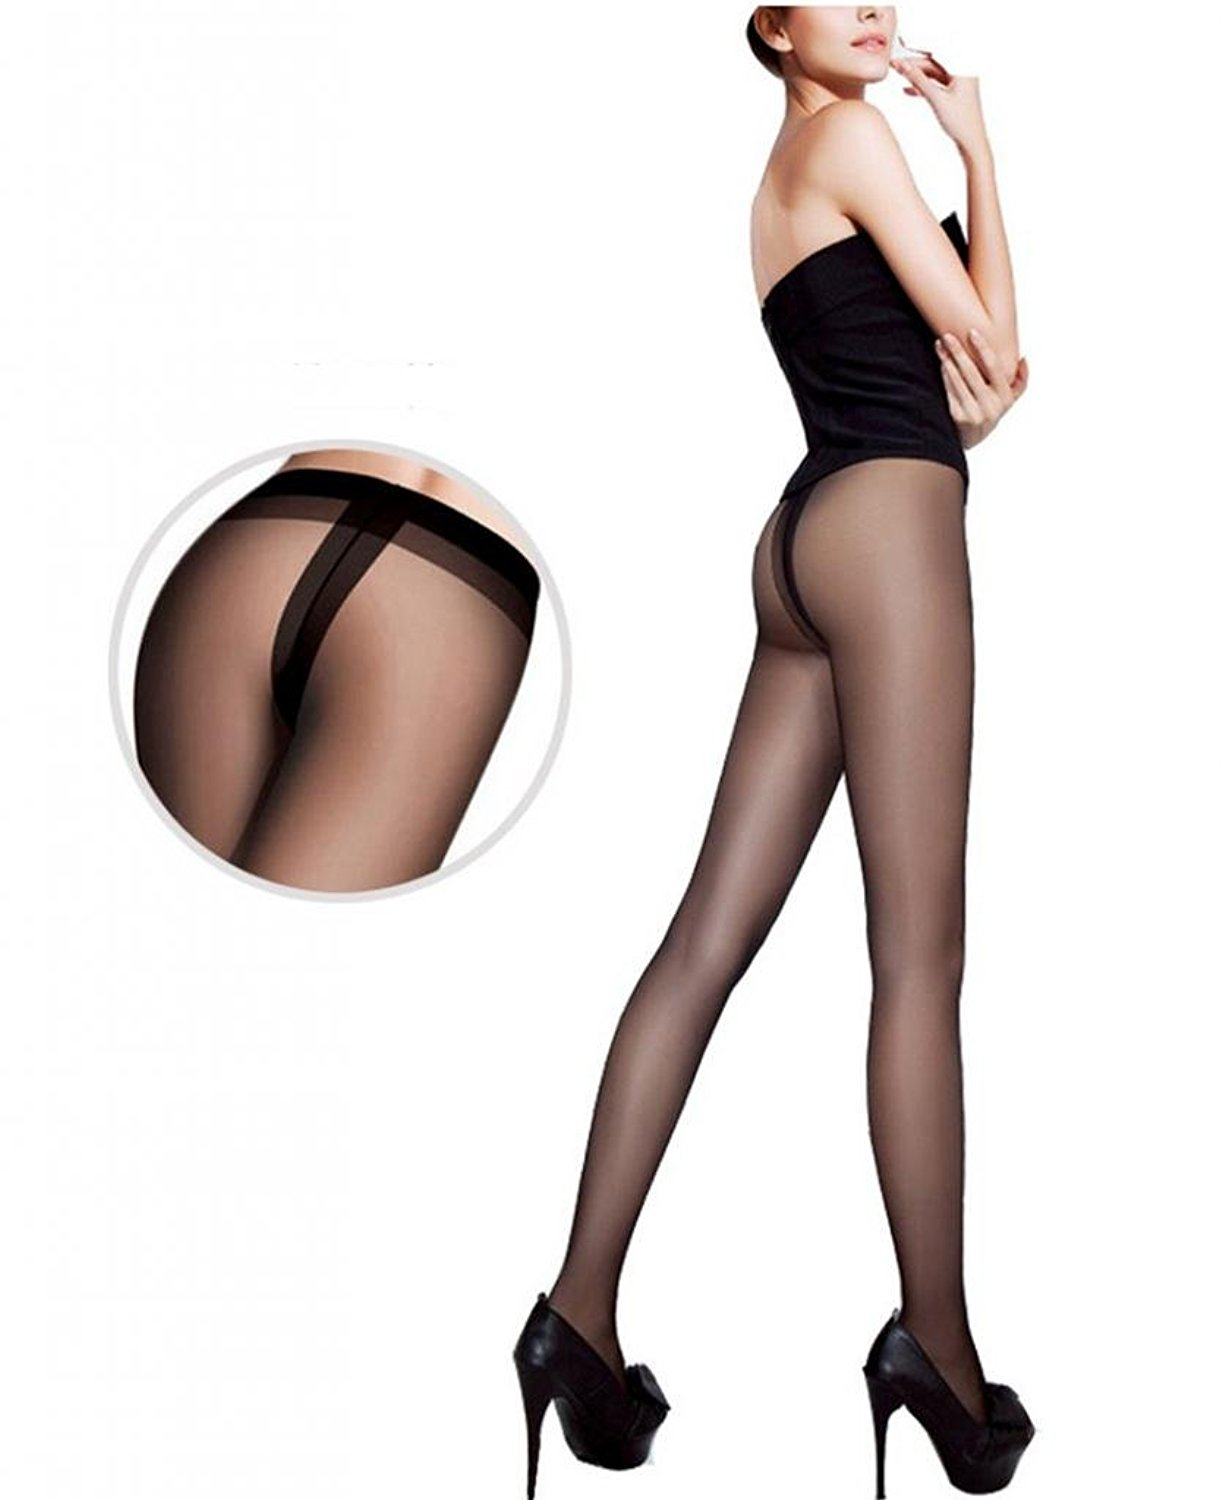 Meriling Women's Sheer to Waist with Leg Support T-thong Panty hose (pack of 2 pairs)